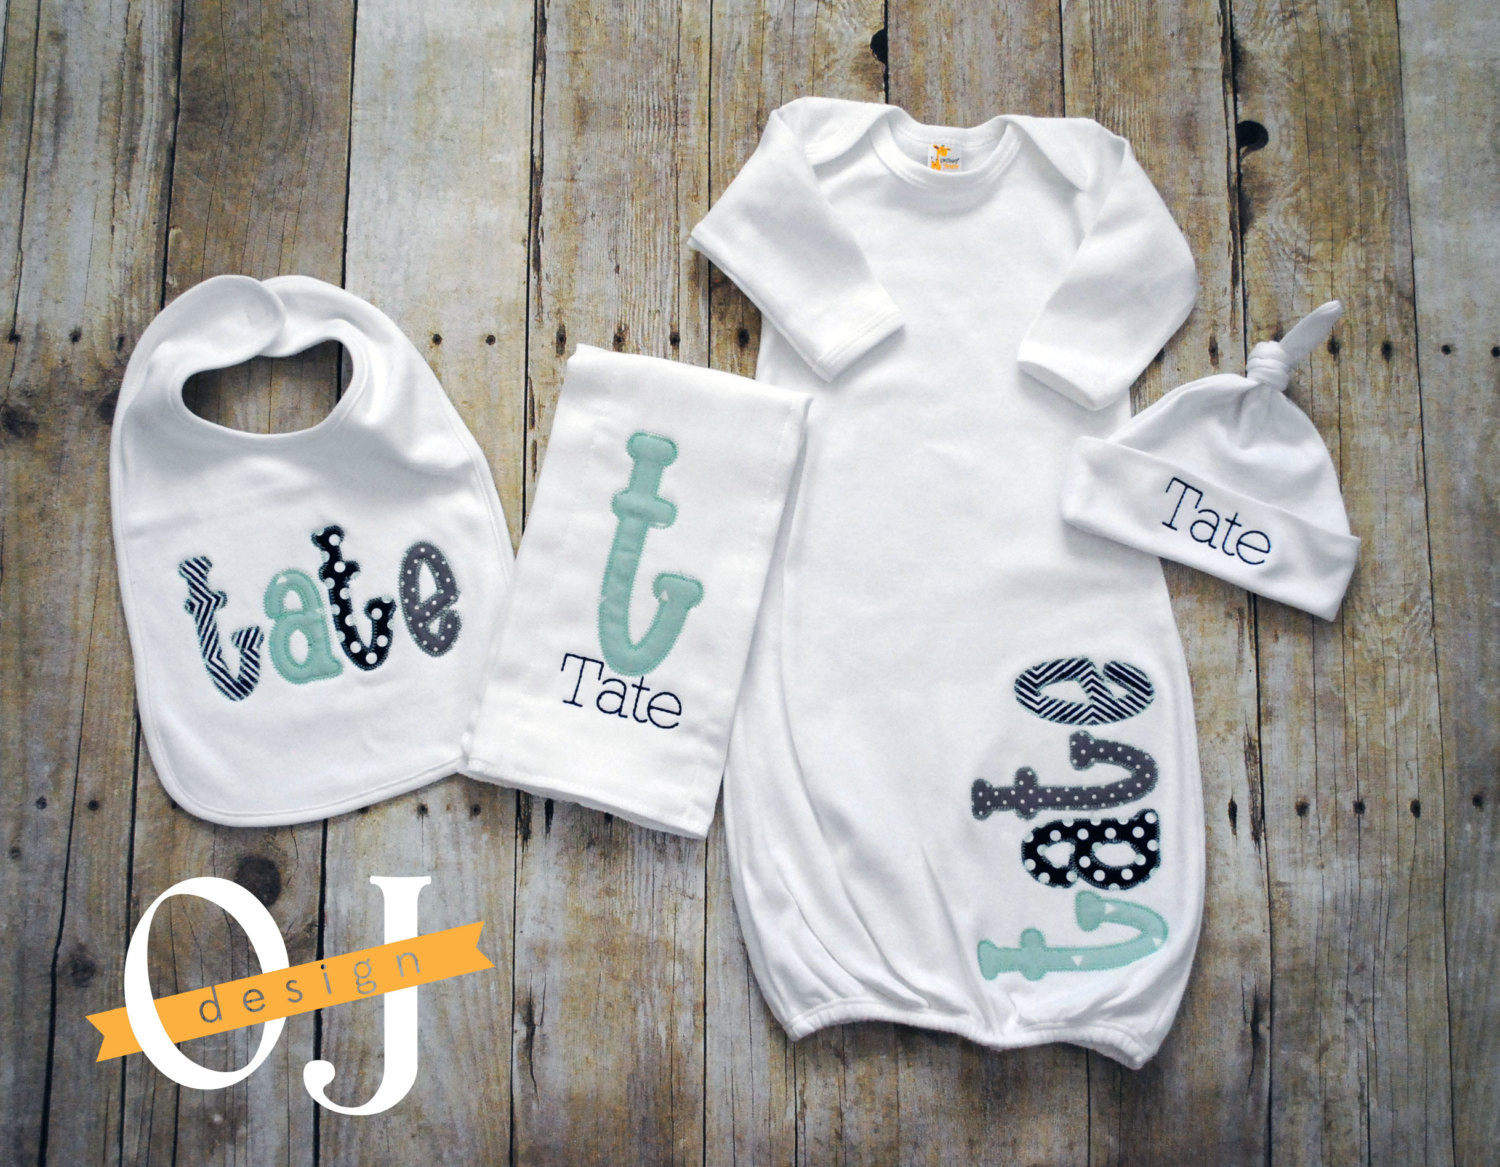 Personalized Baby Boy Gifts  Personalized Baby Boy Gift Set Newborn Gift Set Infant